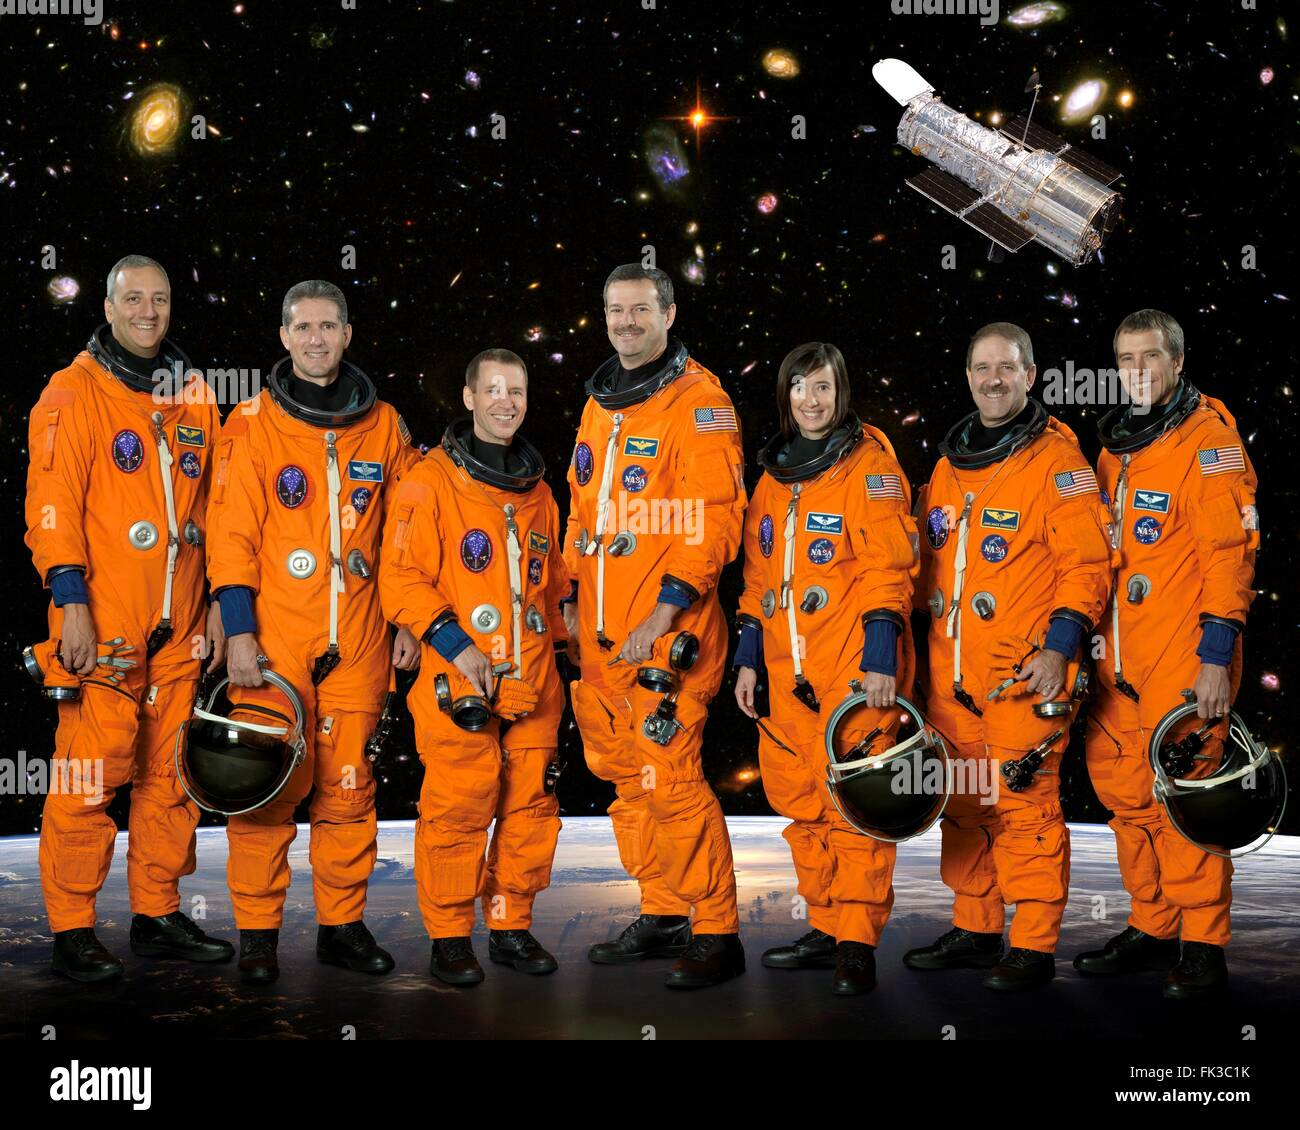 Group portrait of the STS-125 space shuttle crew astronauts in orange launch and entry suits at the Johnson Space - Stock Image